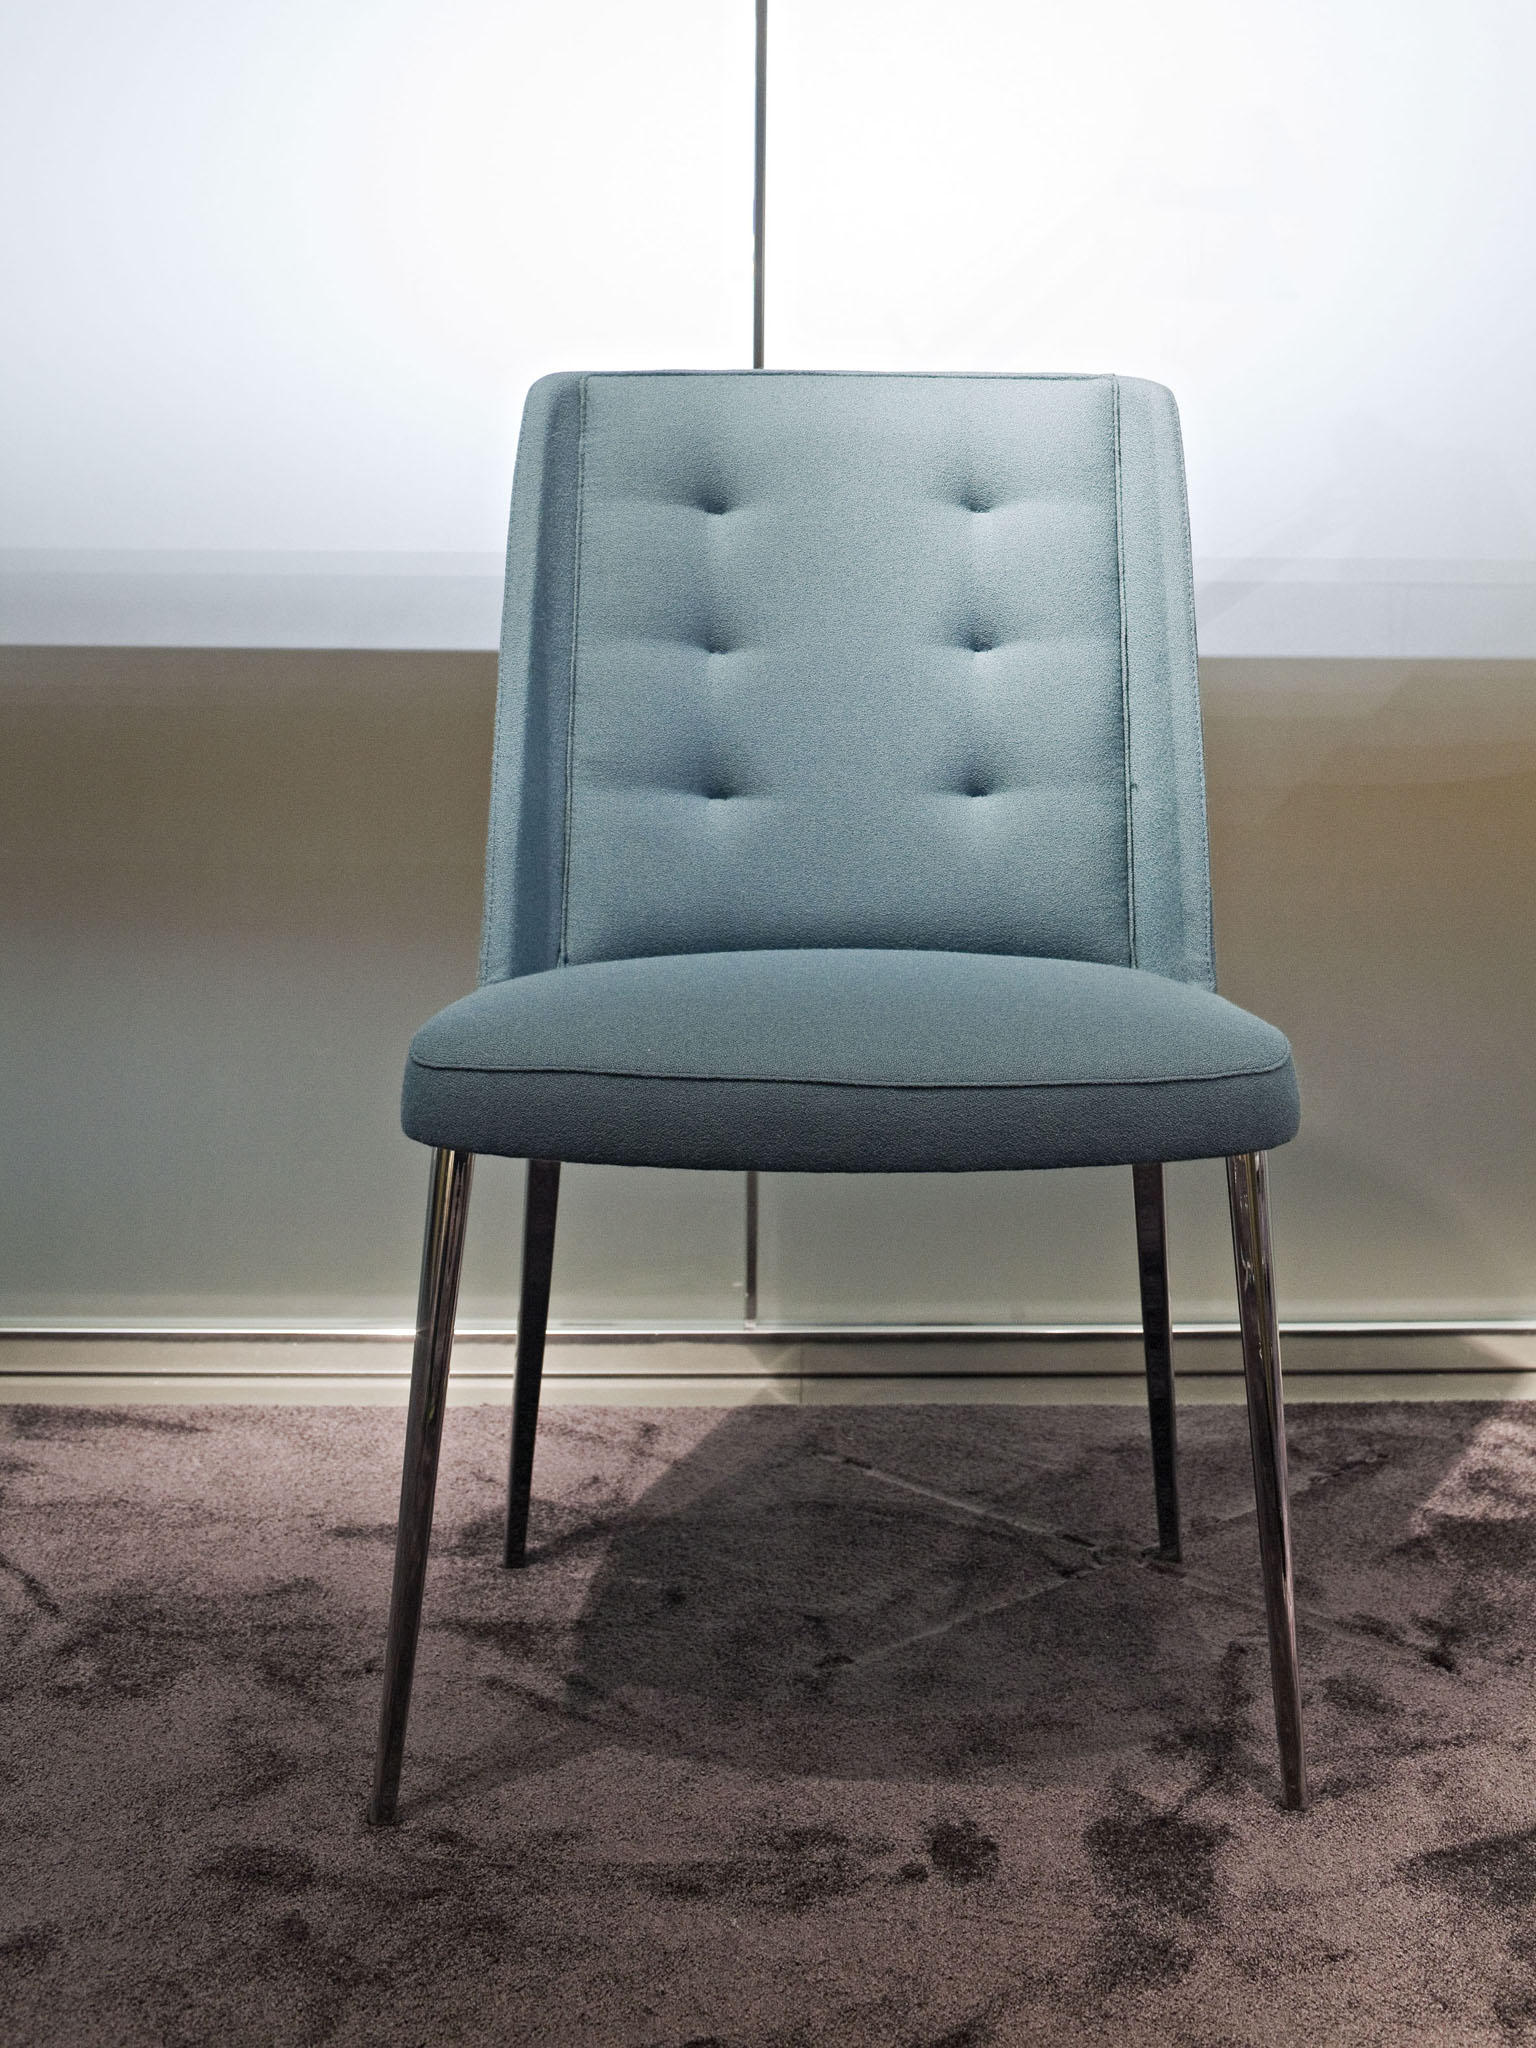 EMBRACE   CHAIR - Chairs from Estel Group   Architonic